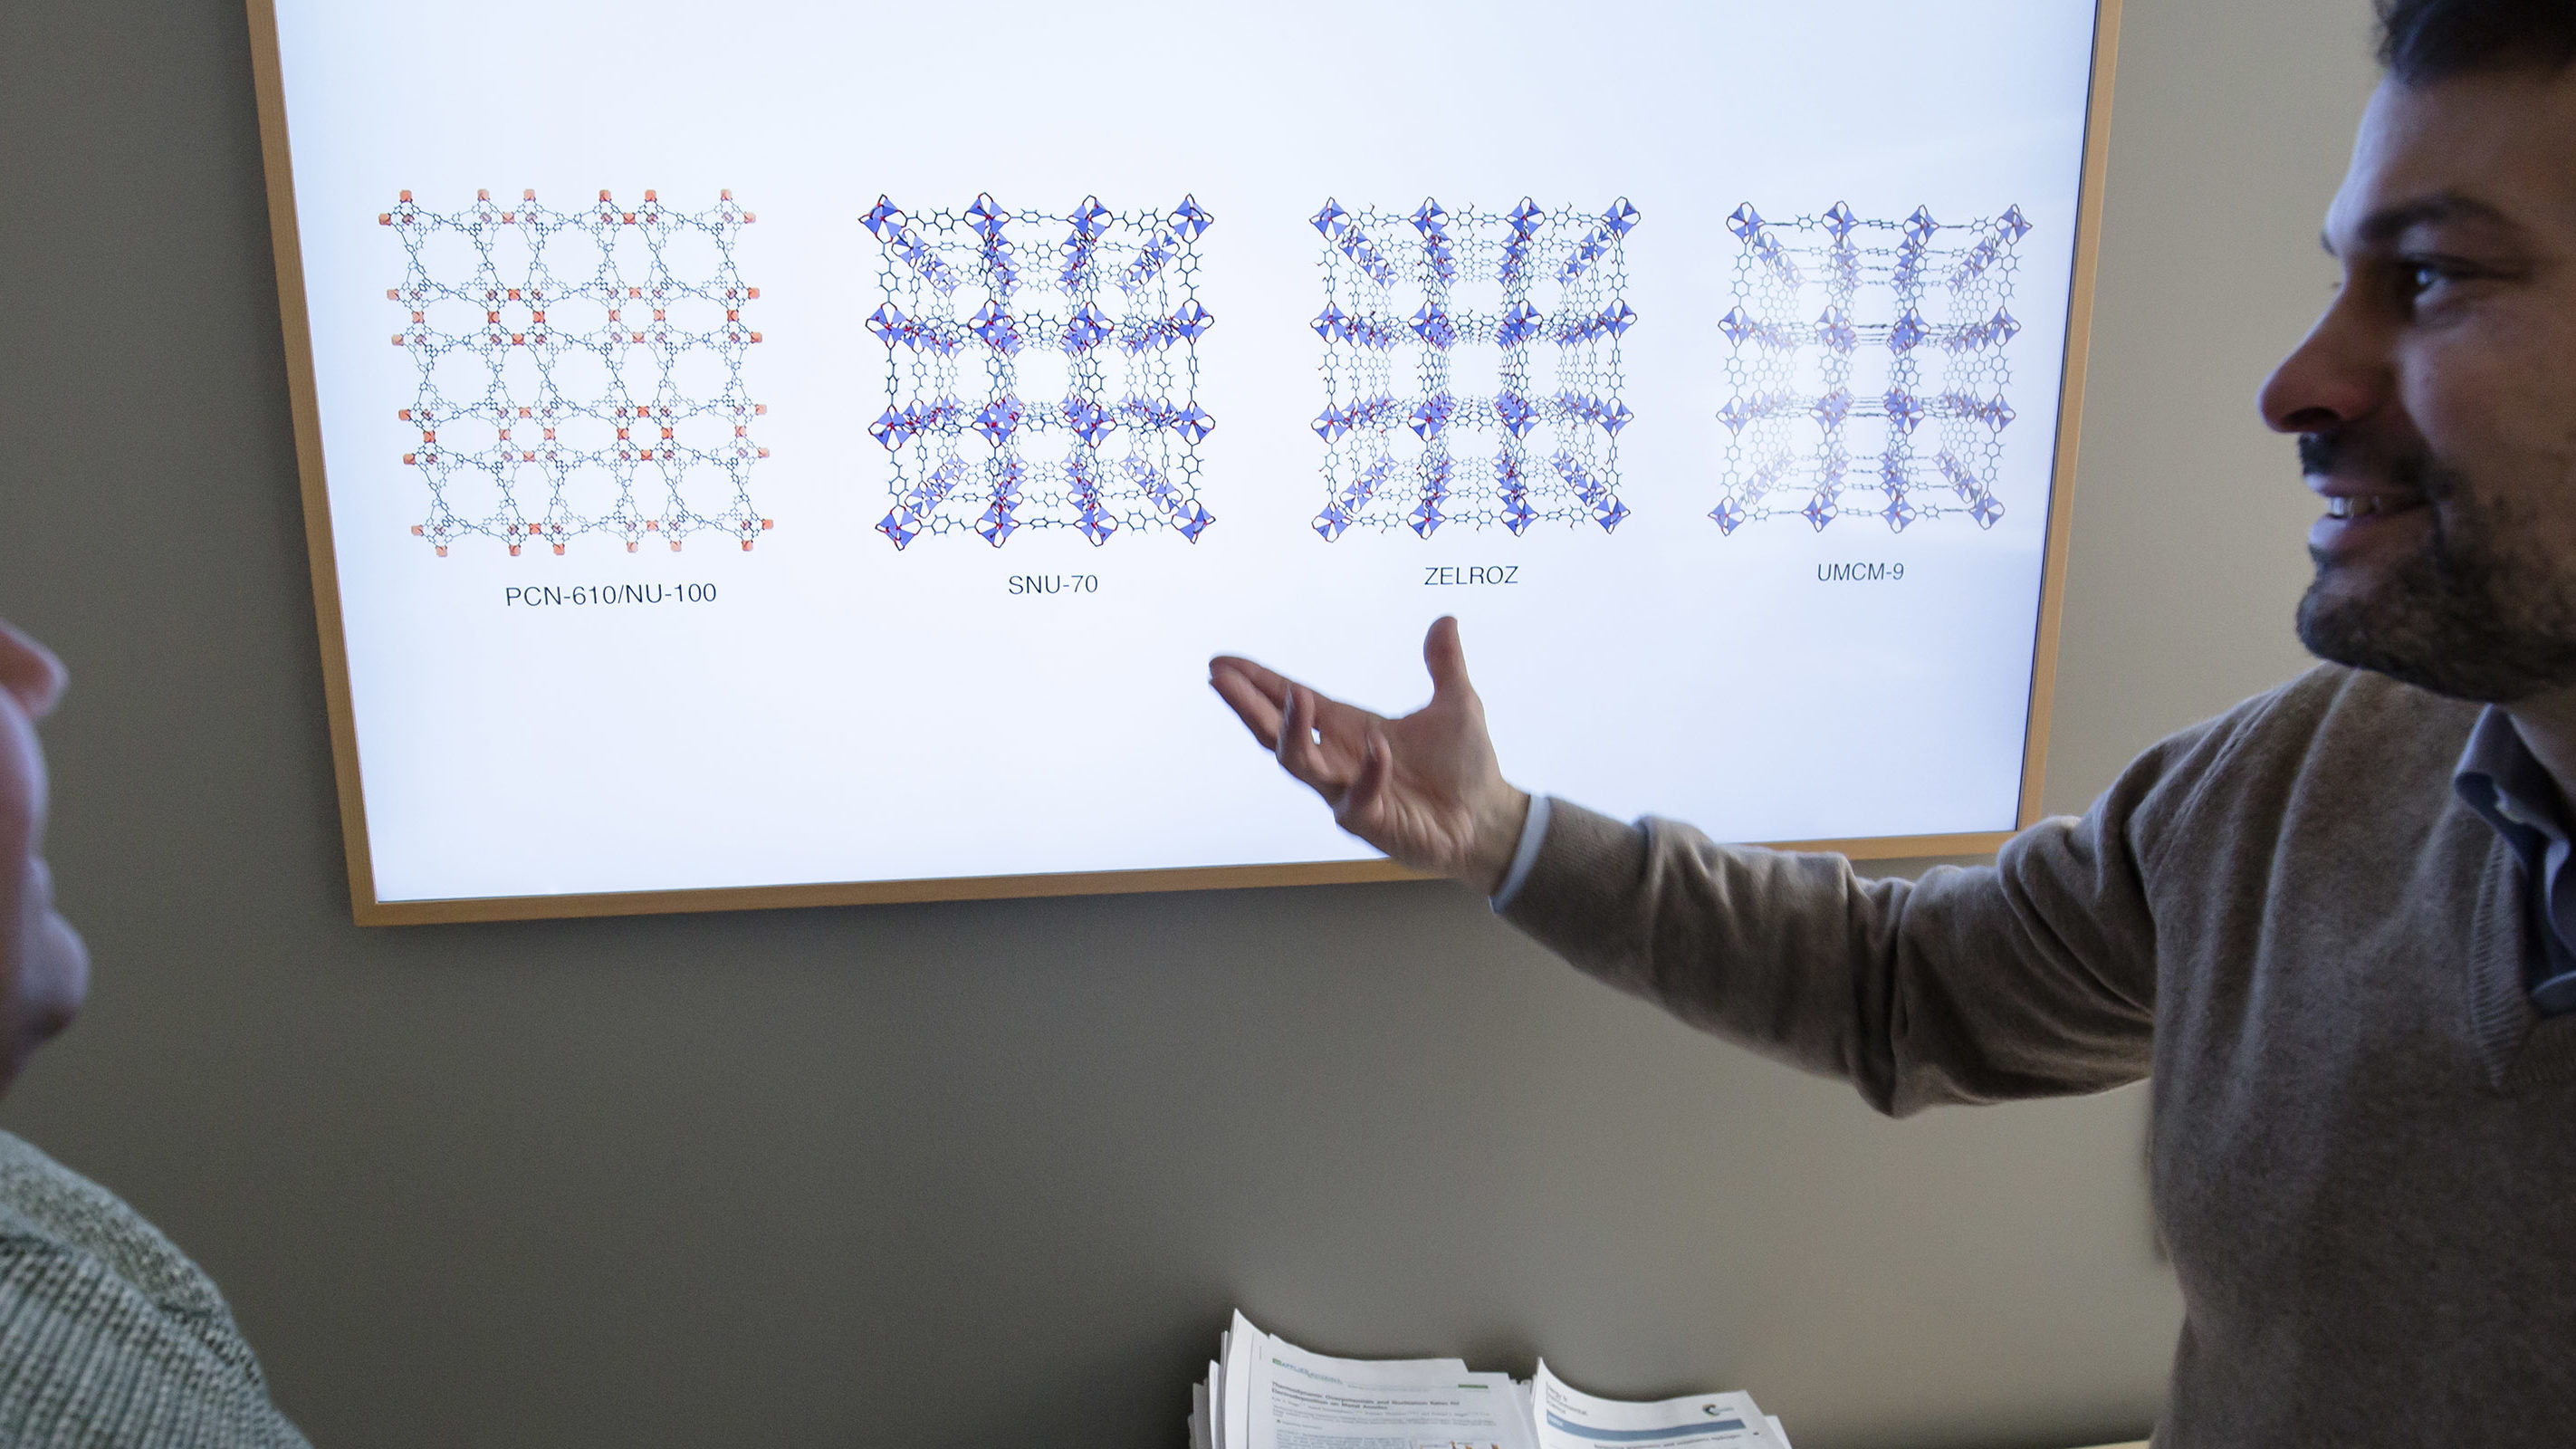 Alauddin Ahmed, an assistant research scientist, and Donald Siegel, an associate professor, show off the results of a computational metal-organic framework (MOF) study.